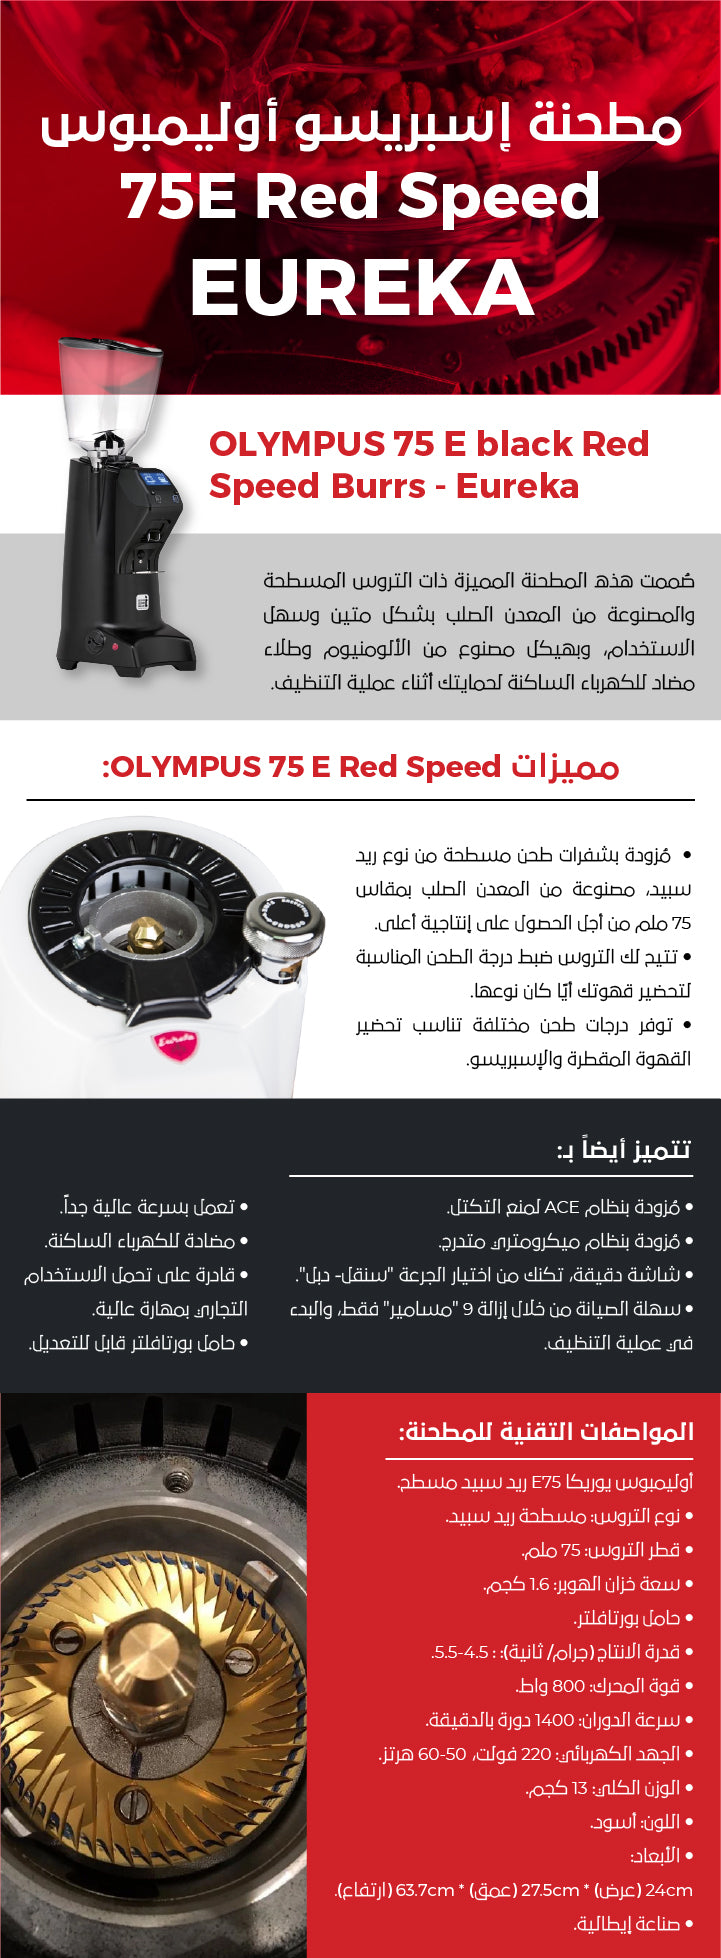 75 E red speed